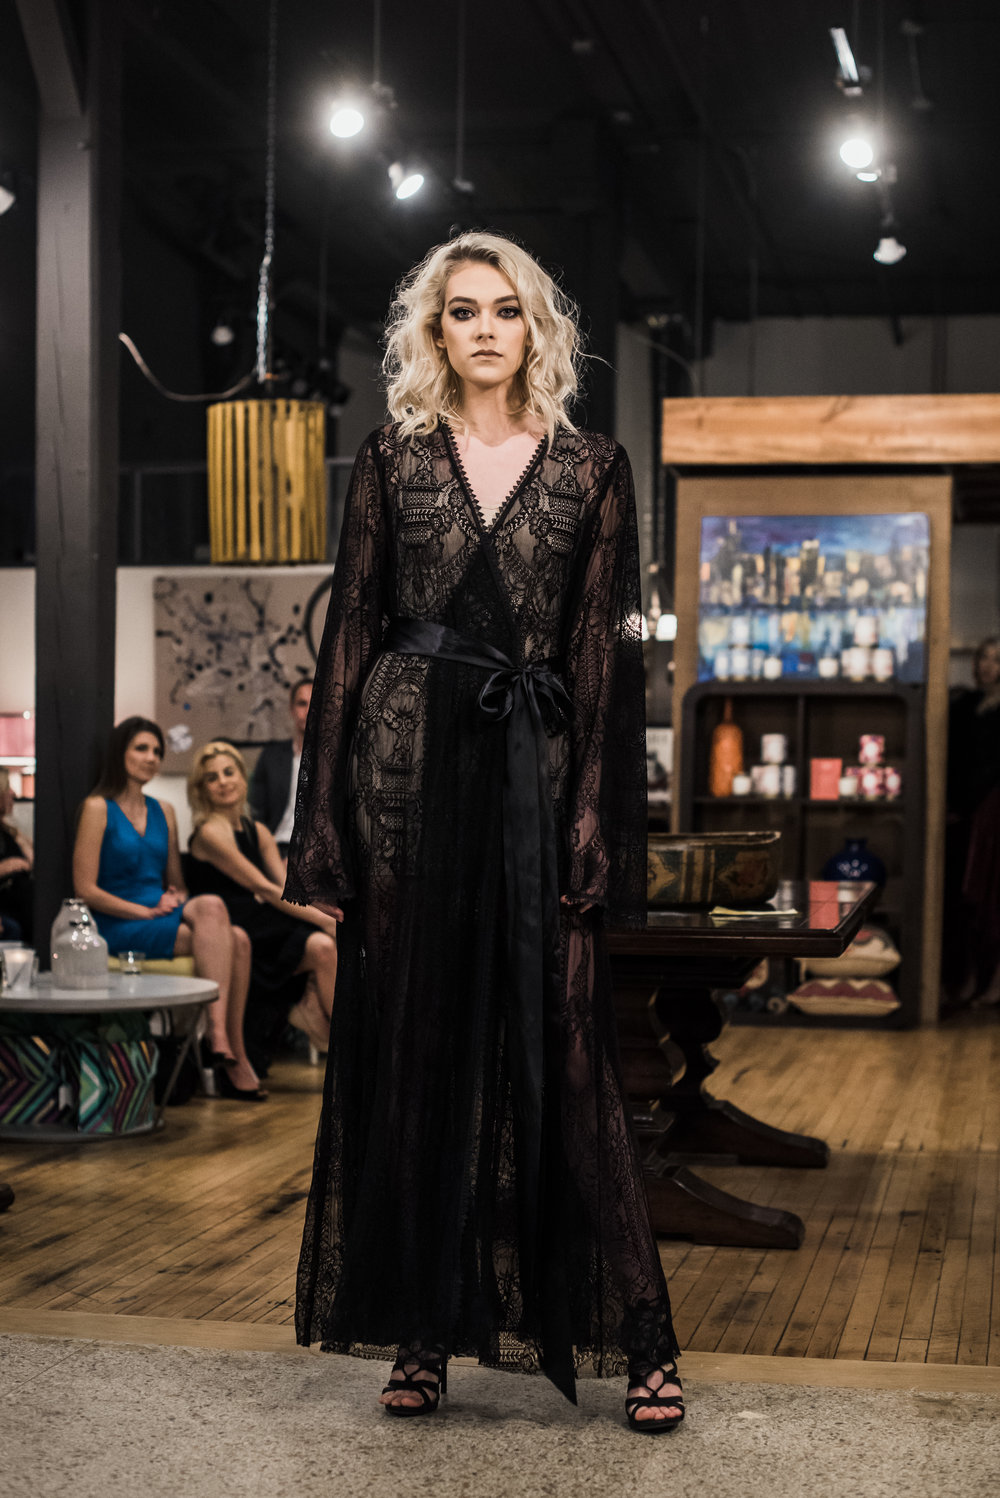 Nicole Petrie wearing the Valentina Lace Robe // PC: Roost Photography